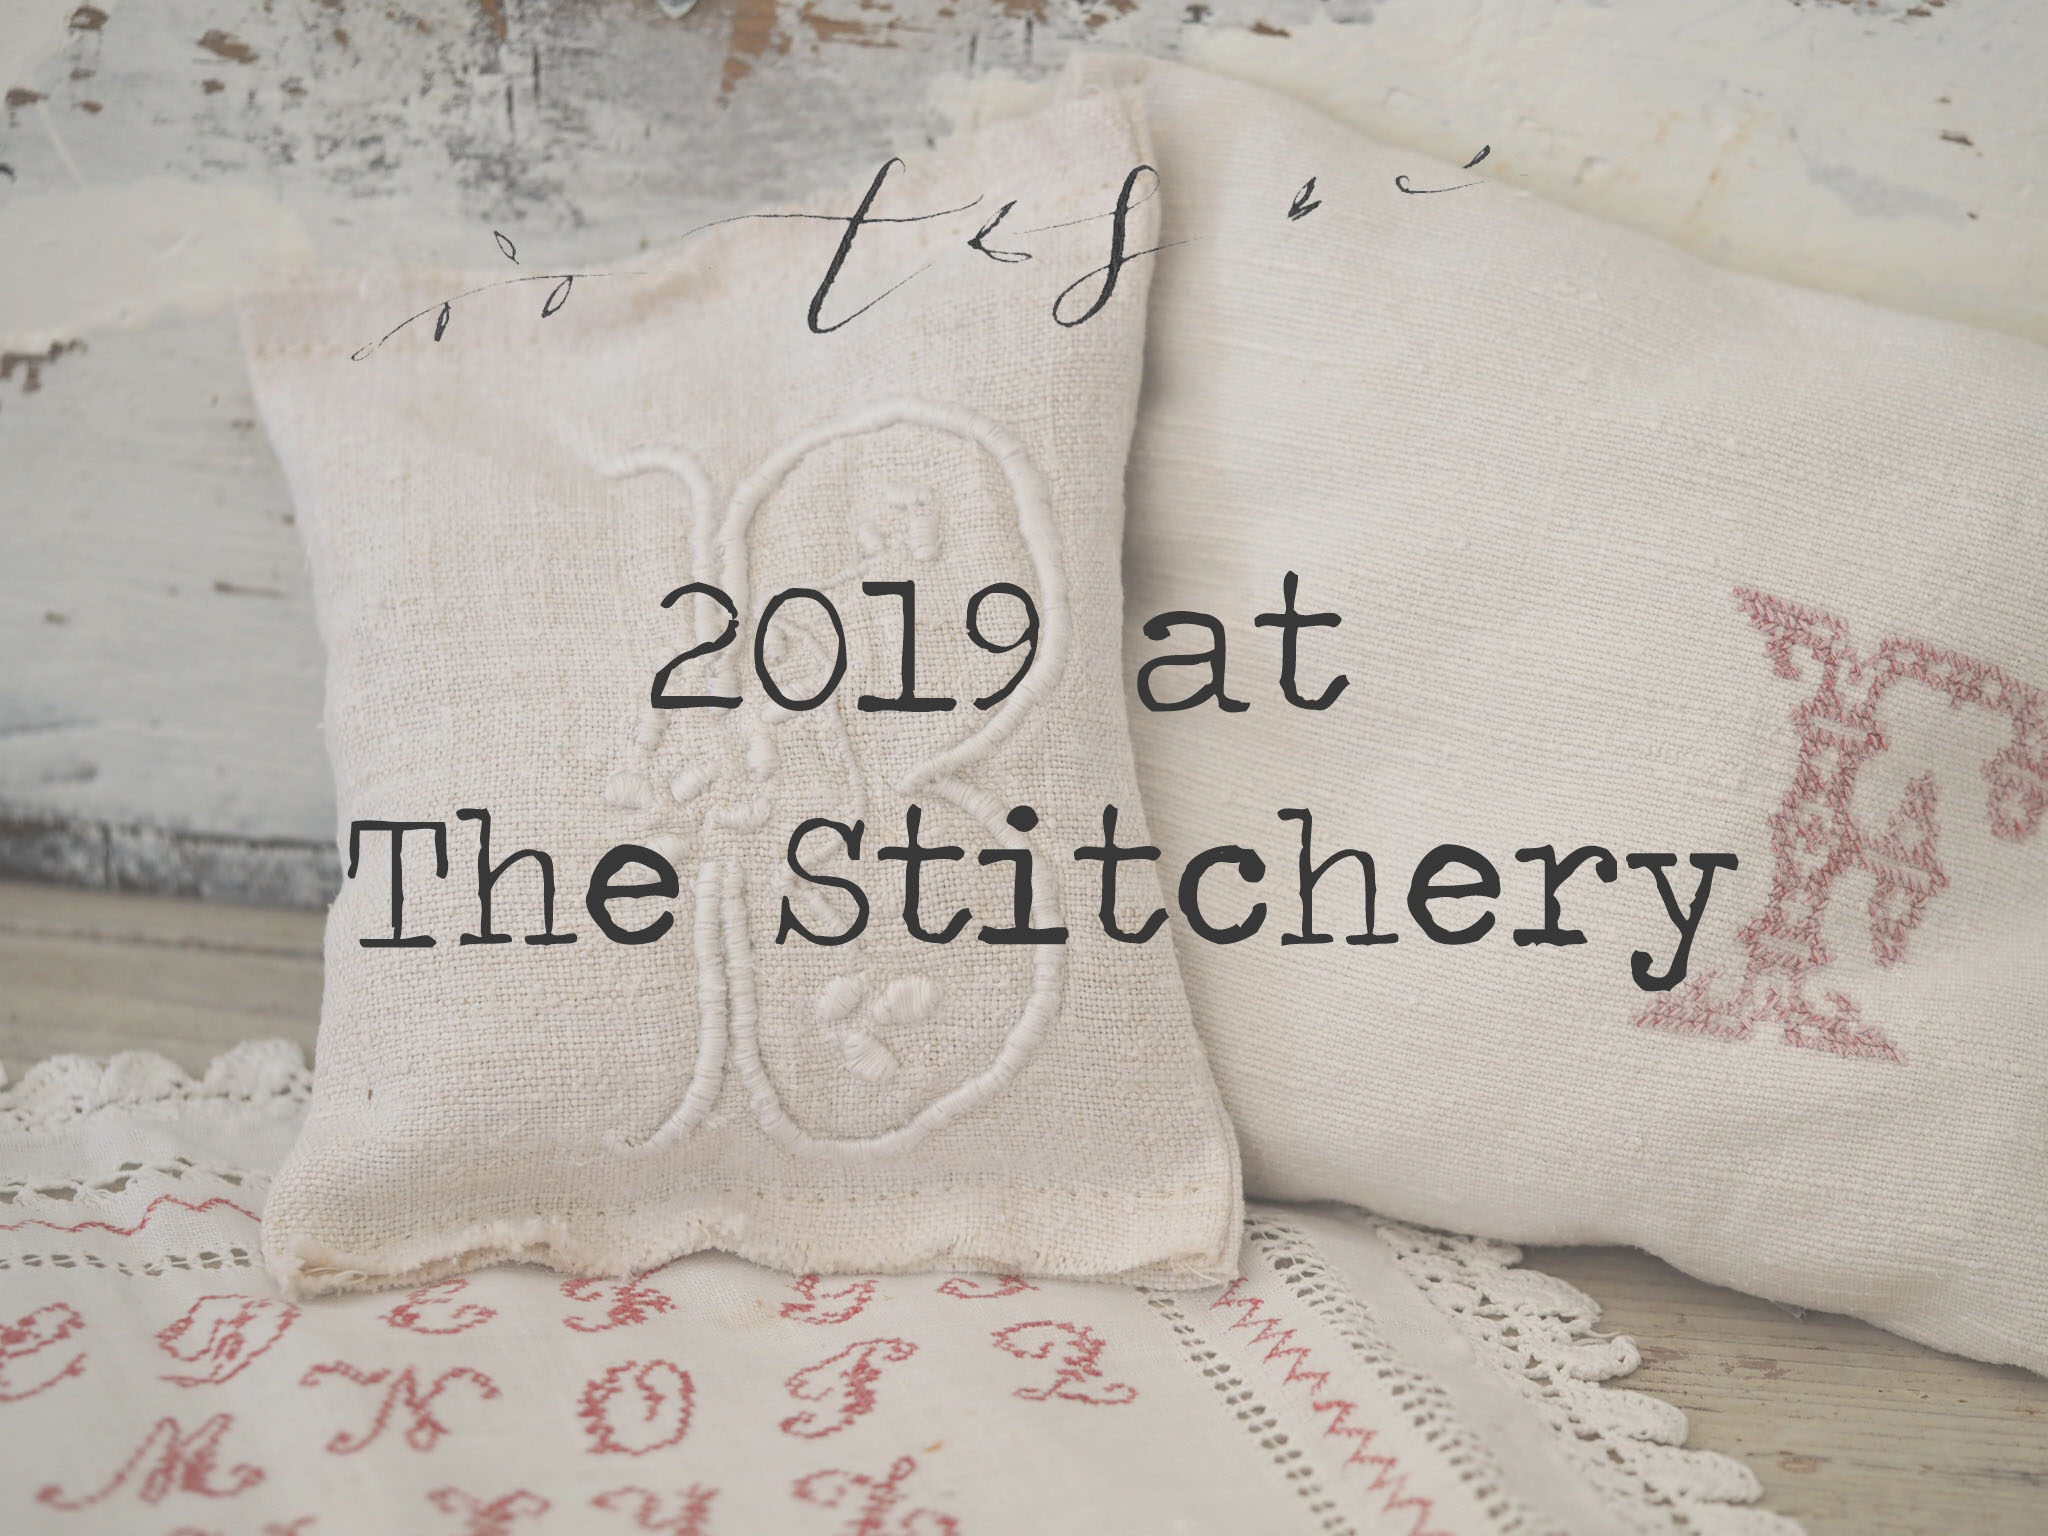 2019 Embroidery Subscription: The Stitchery Sampler